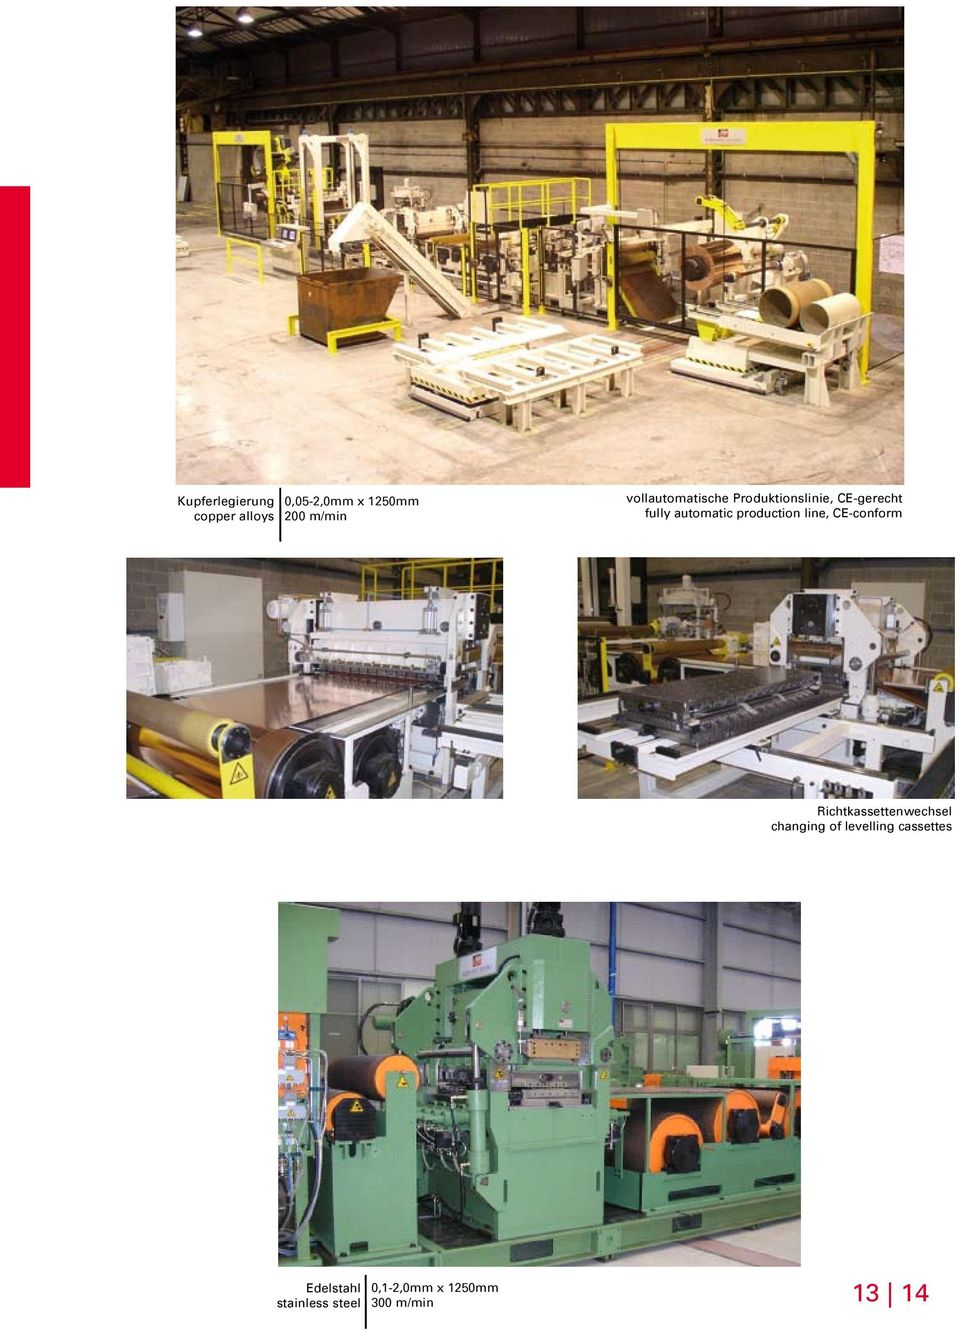 production line, CE-conform Richtkassettenwechsel changing of